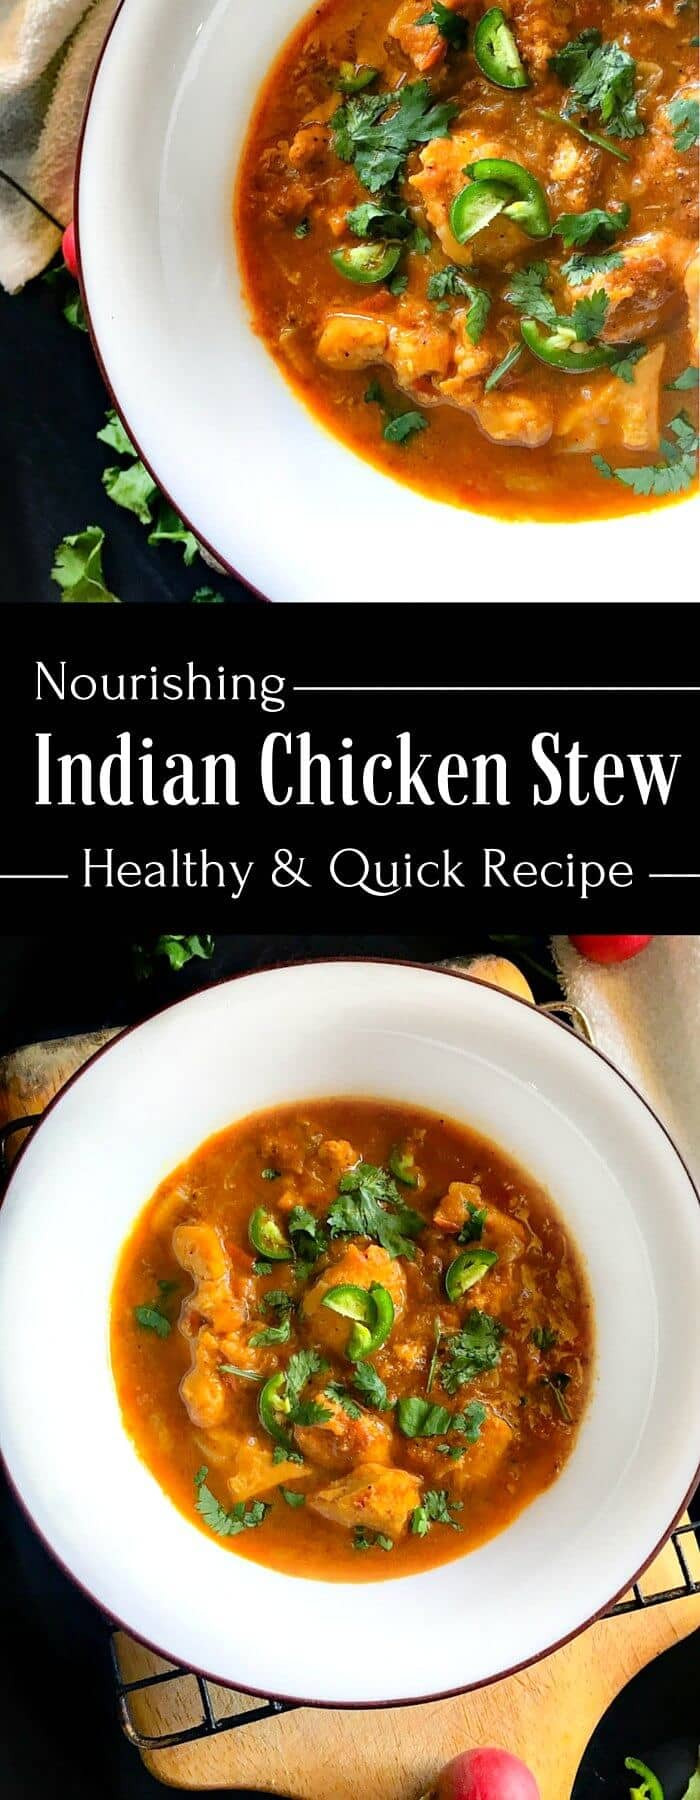 Easy Healthy Indian Recipes  Nourishing Indian Chicken Stew Healthy and Quick Recipe